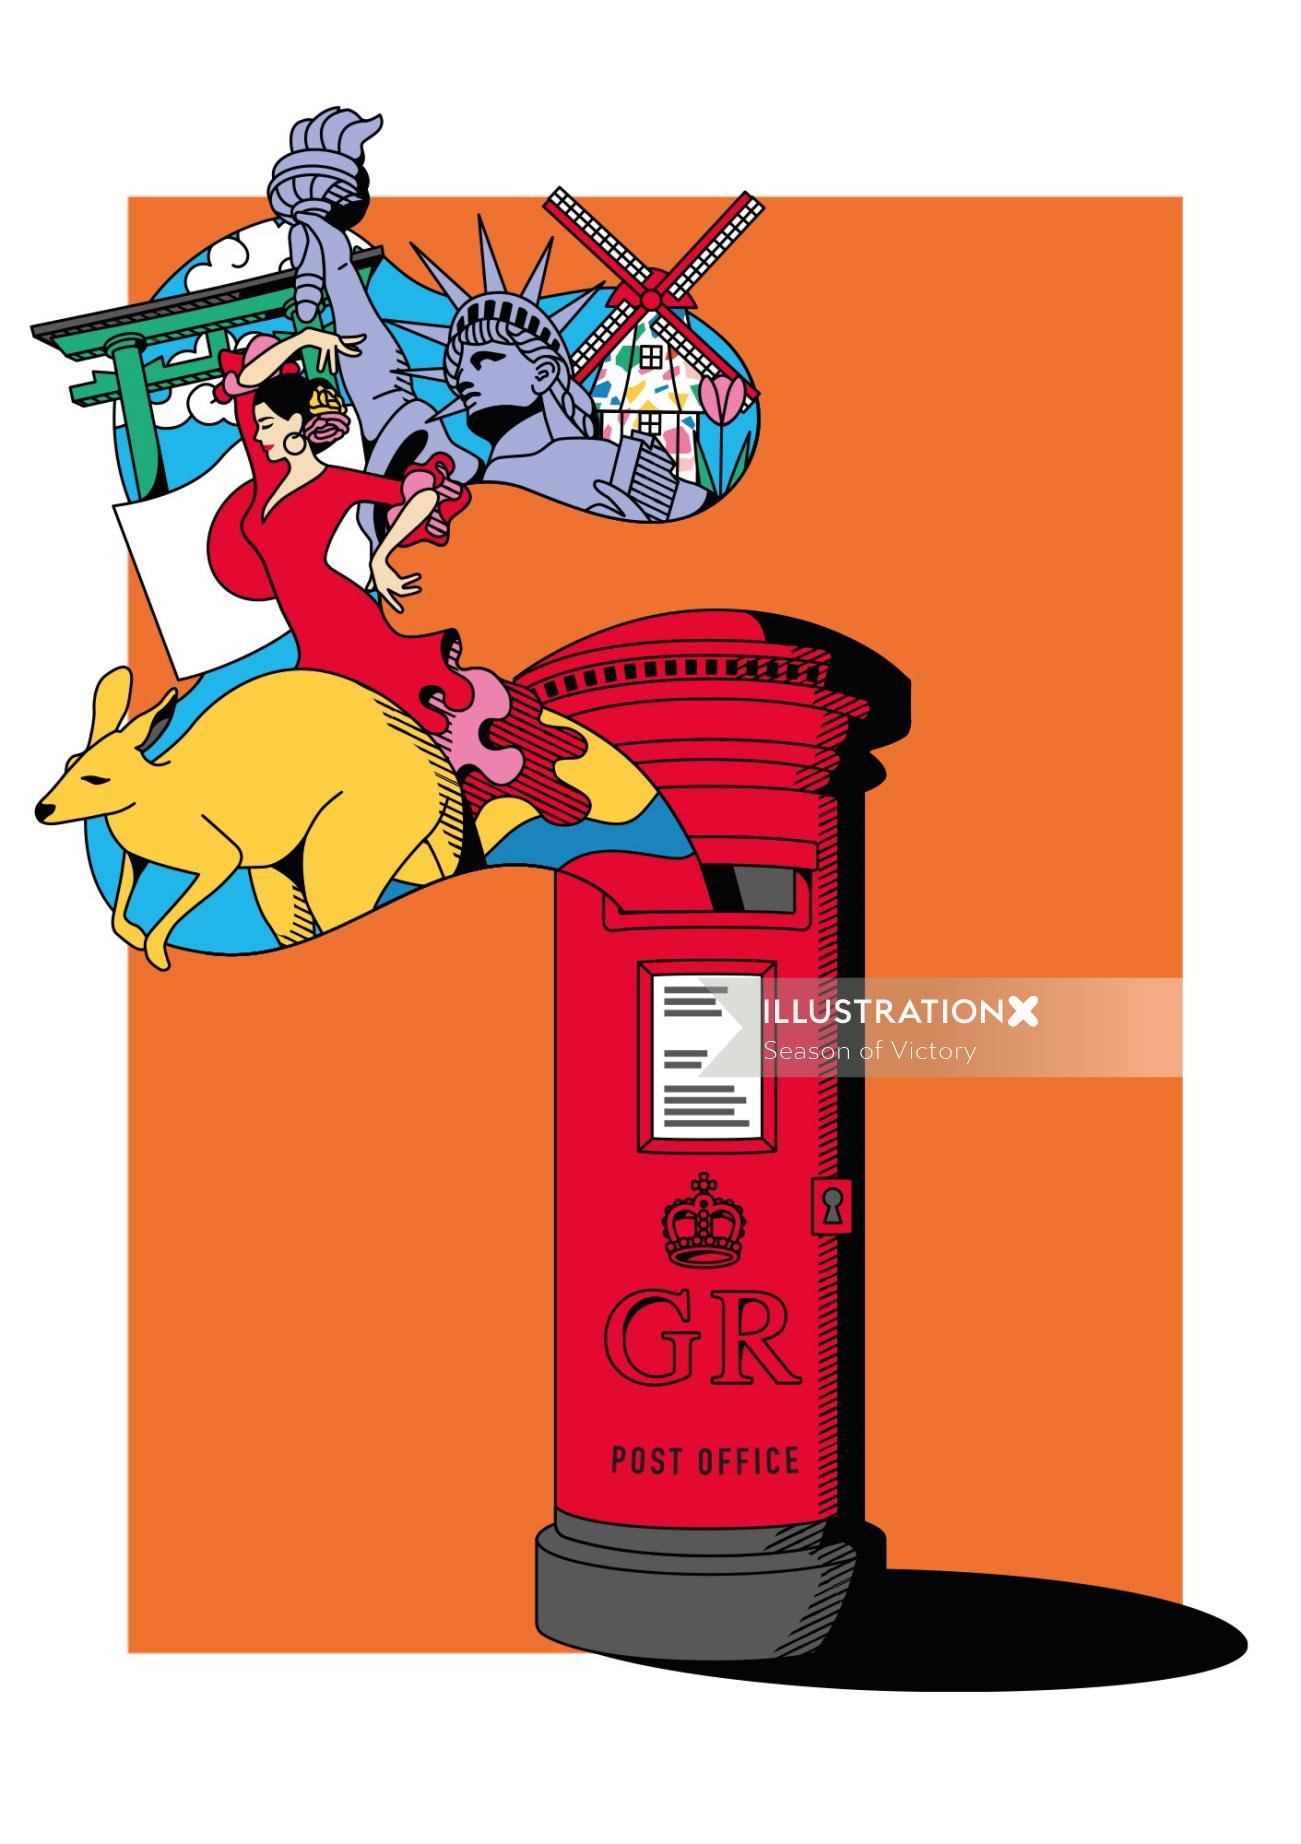 post, postbox, travel, trip, holiday, beefeater gin, gin, japan, spain, australia, holland, mail, po